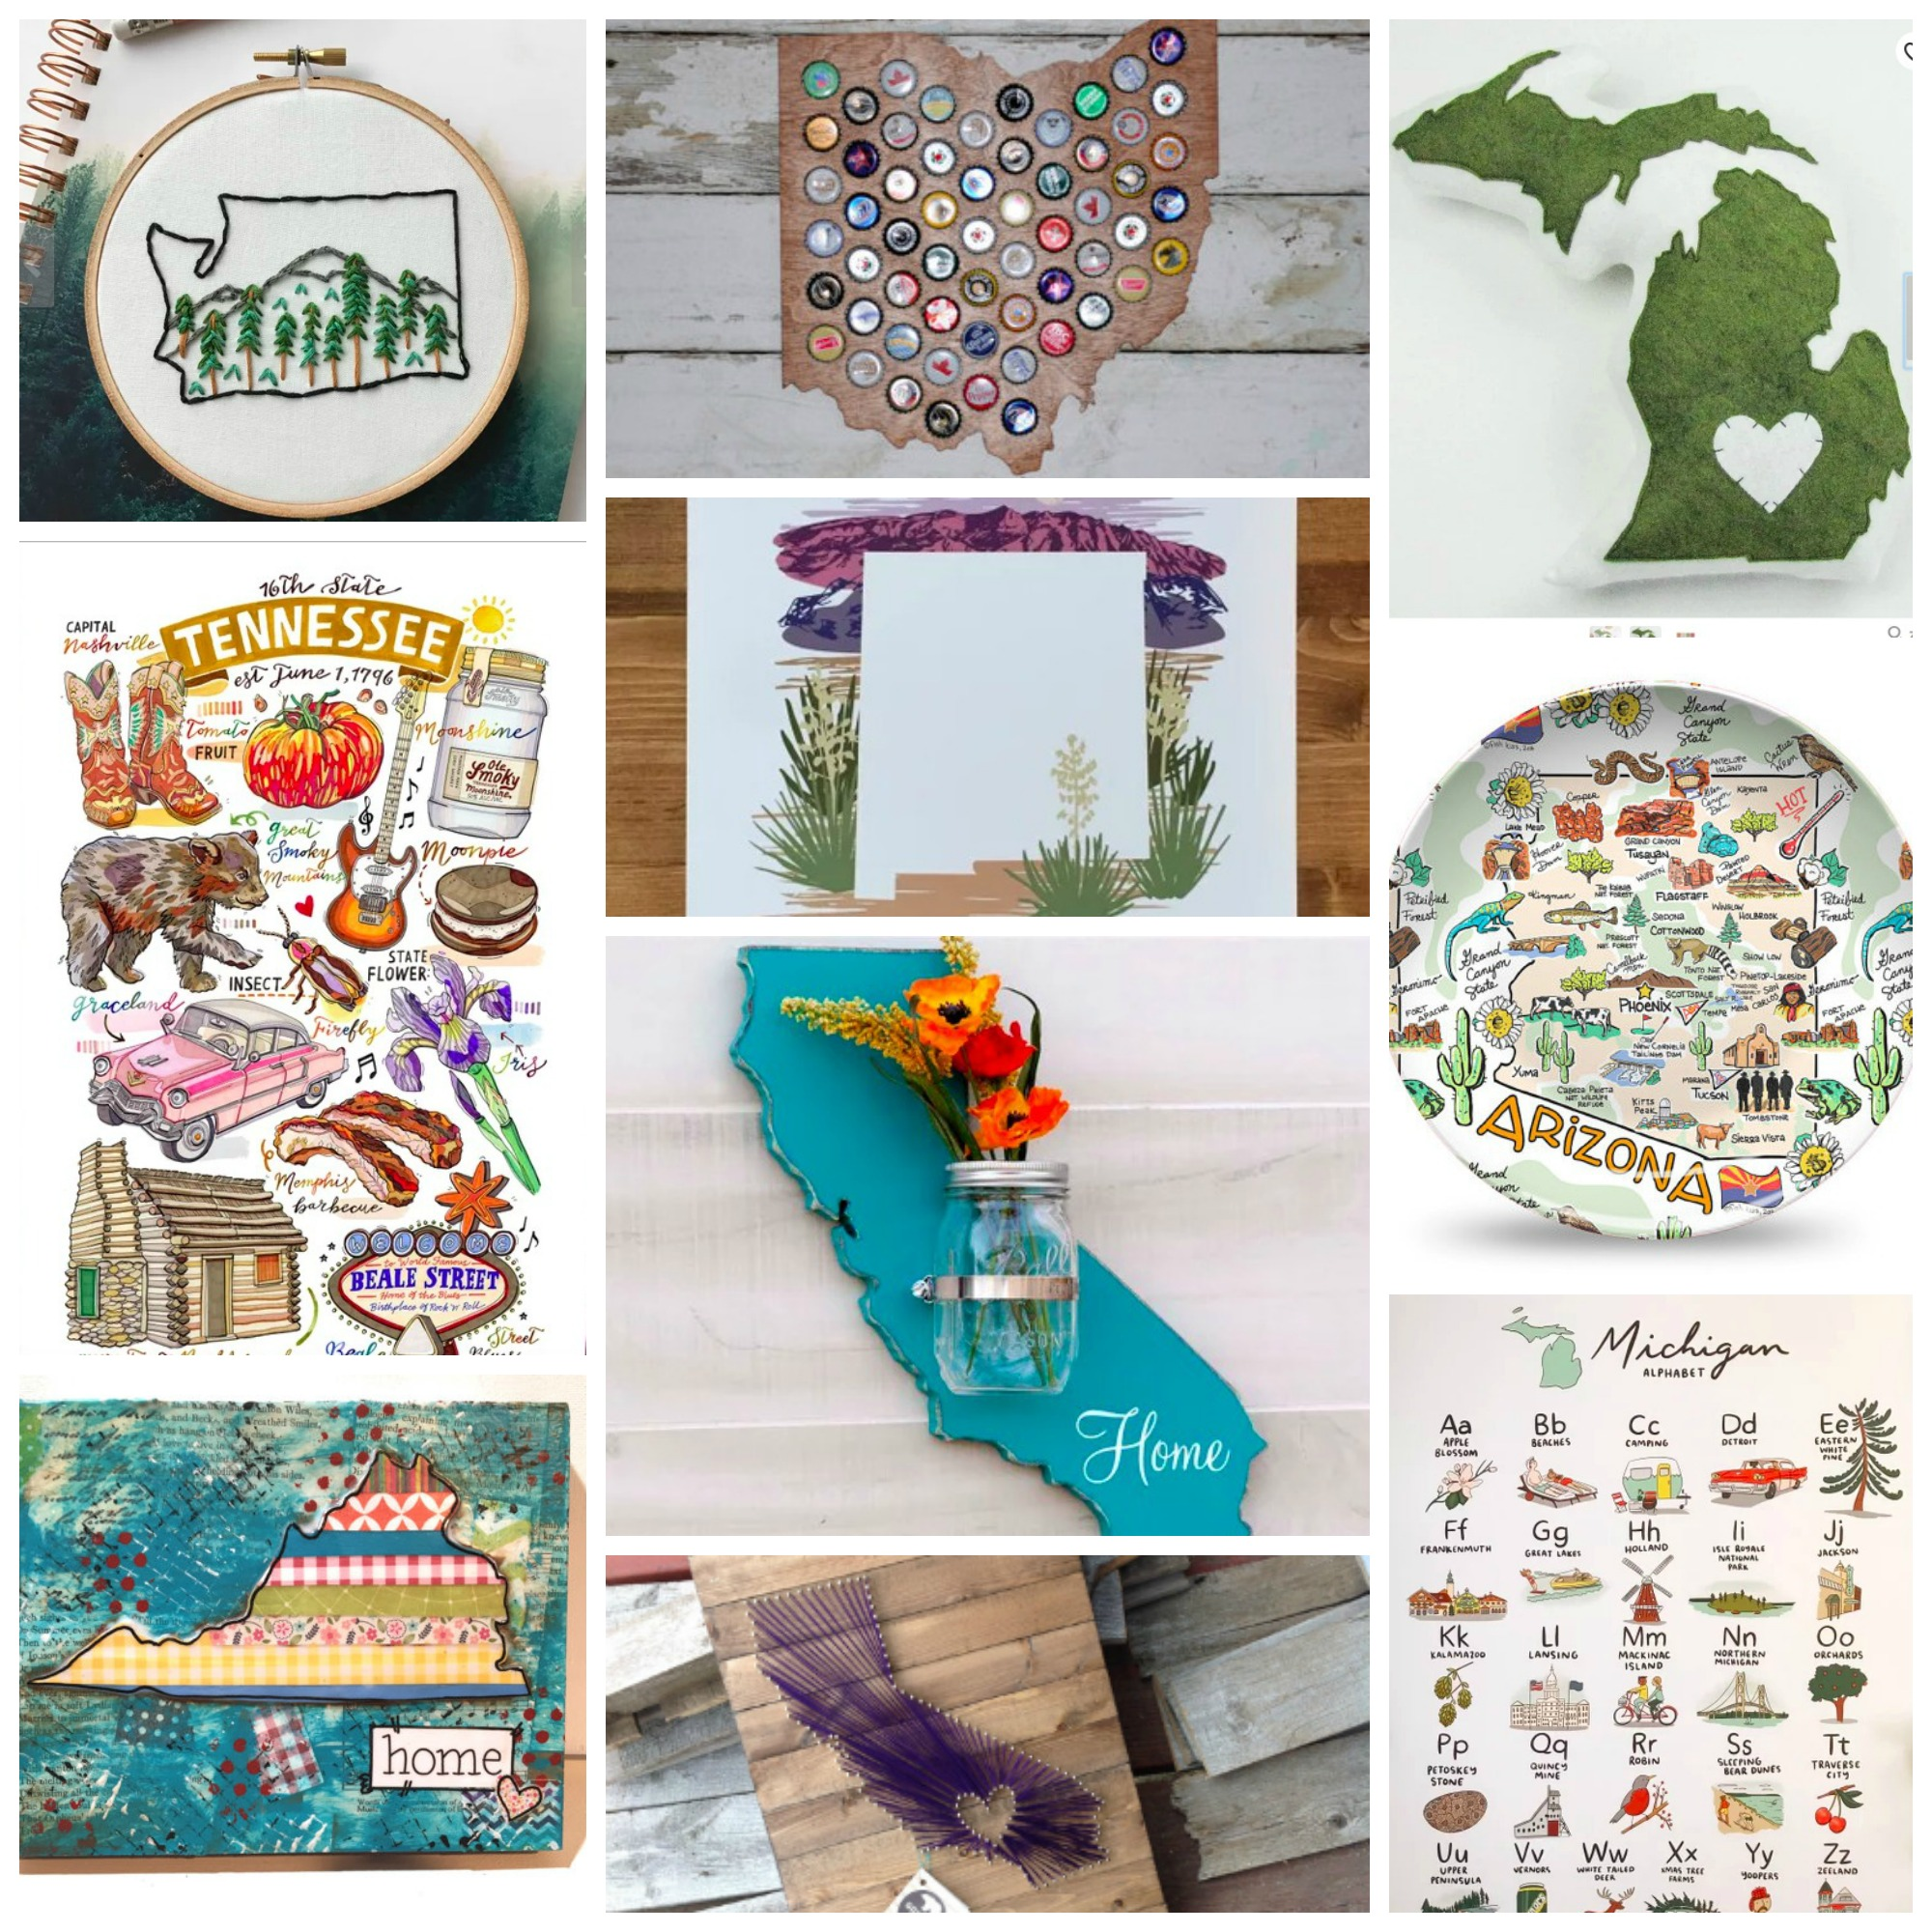 Top 10: 50 United States Home Decor and Art from Etsy, Perfect for House Warming, Wedding and Birthday Gifts